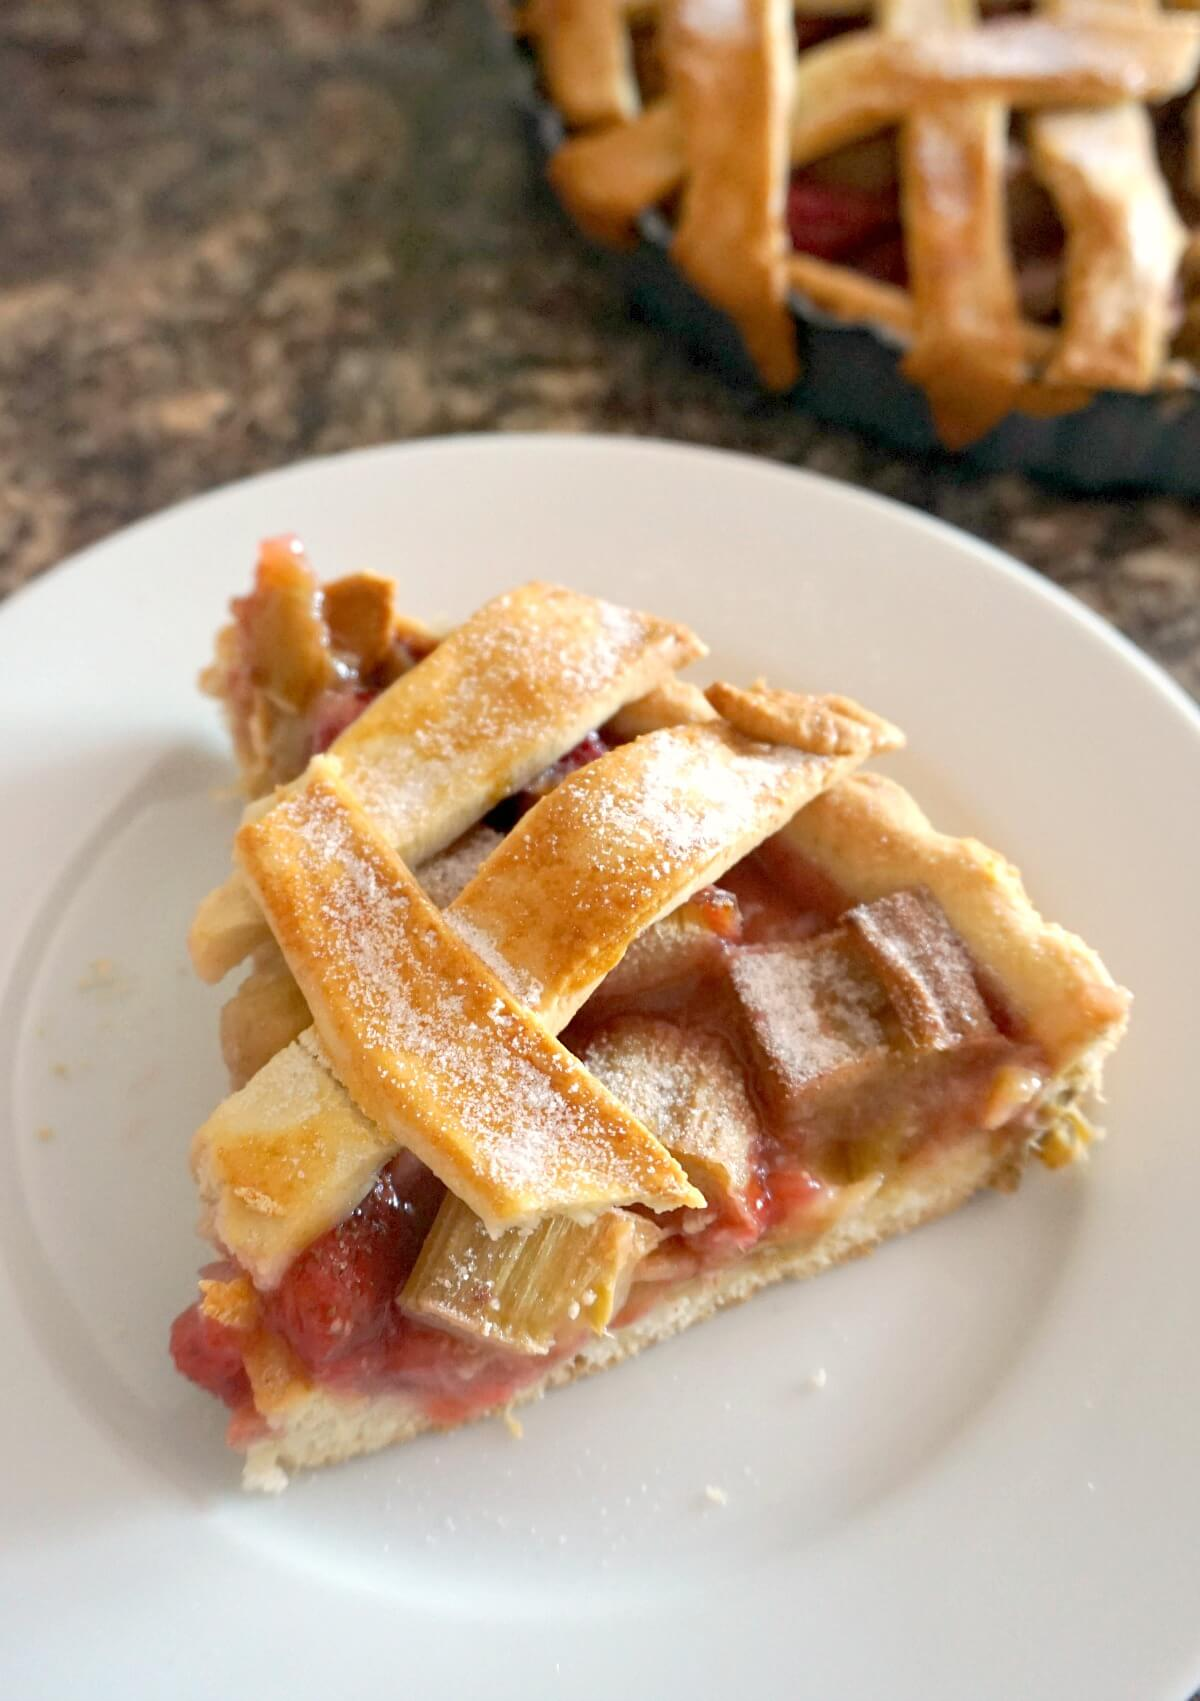 A white plate with a slice of strawberry and rhubarb pie